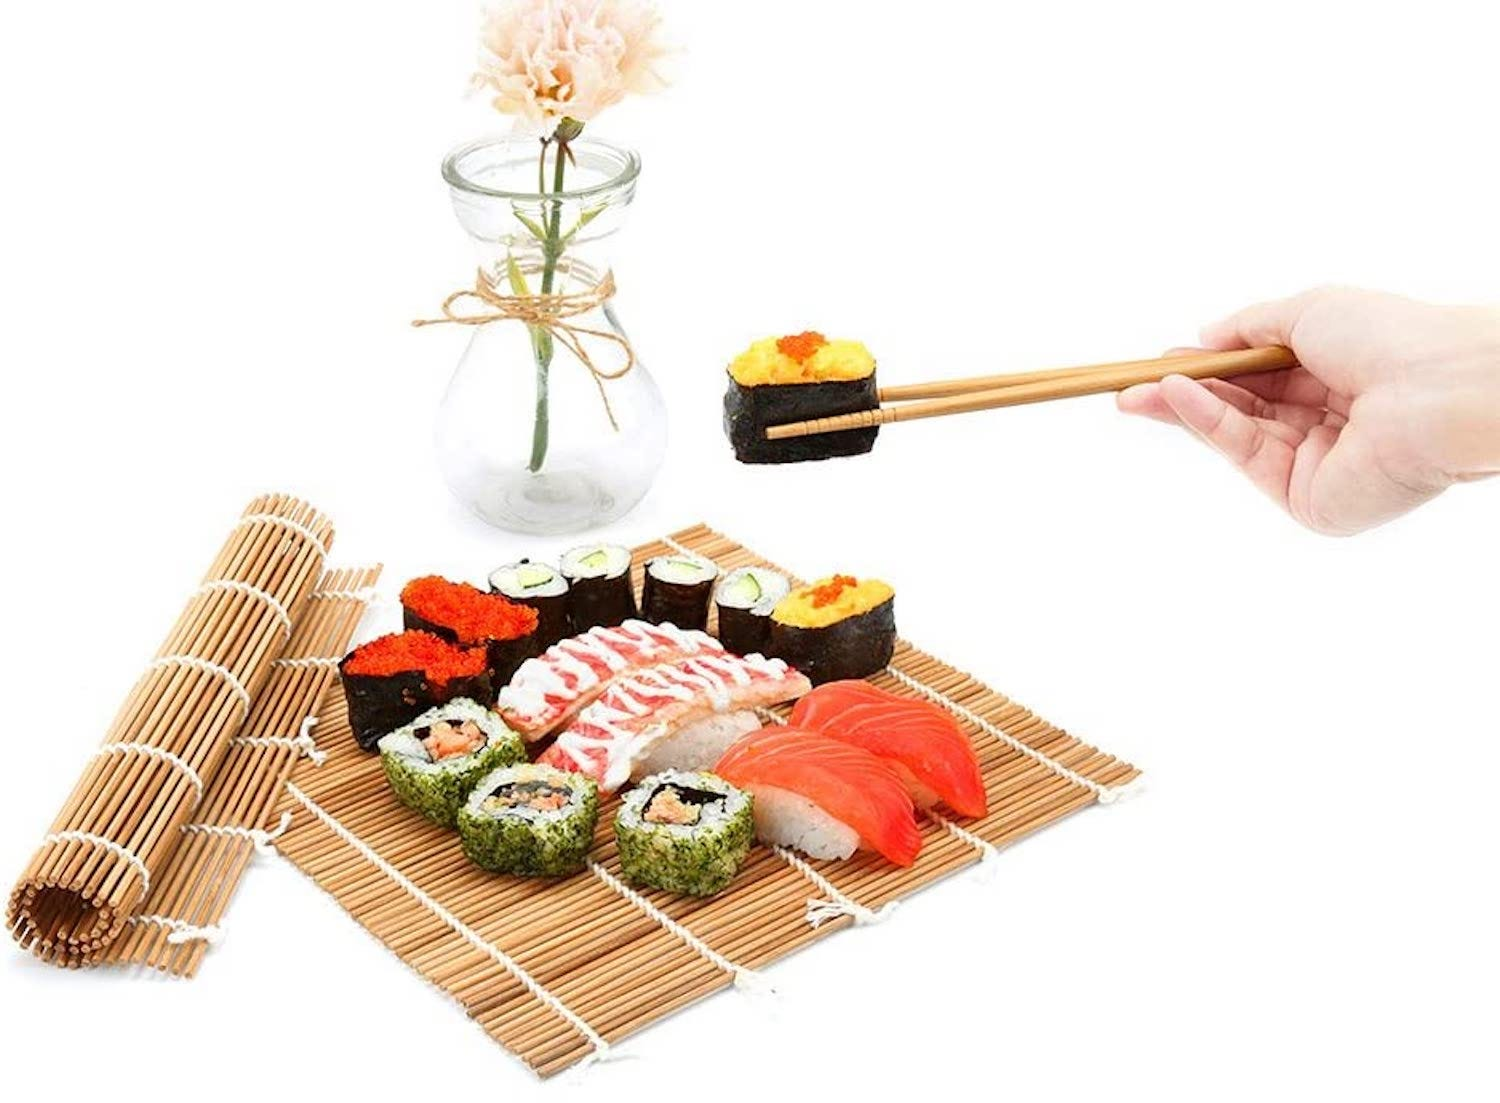 A bamboo mat with assorted sushi sitting on it